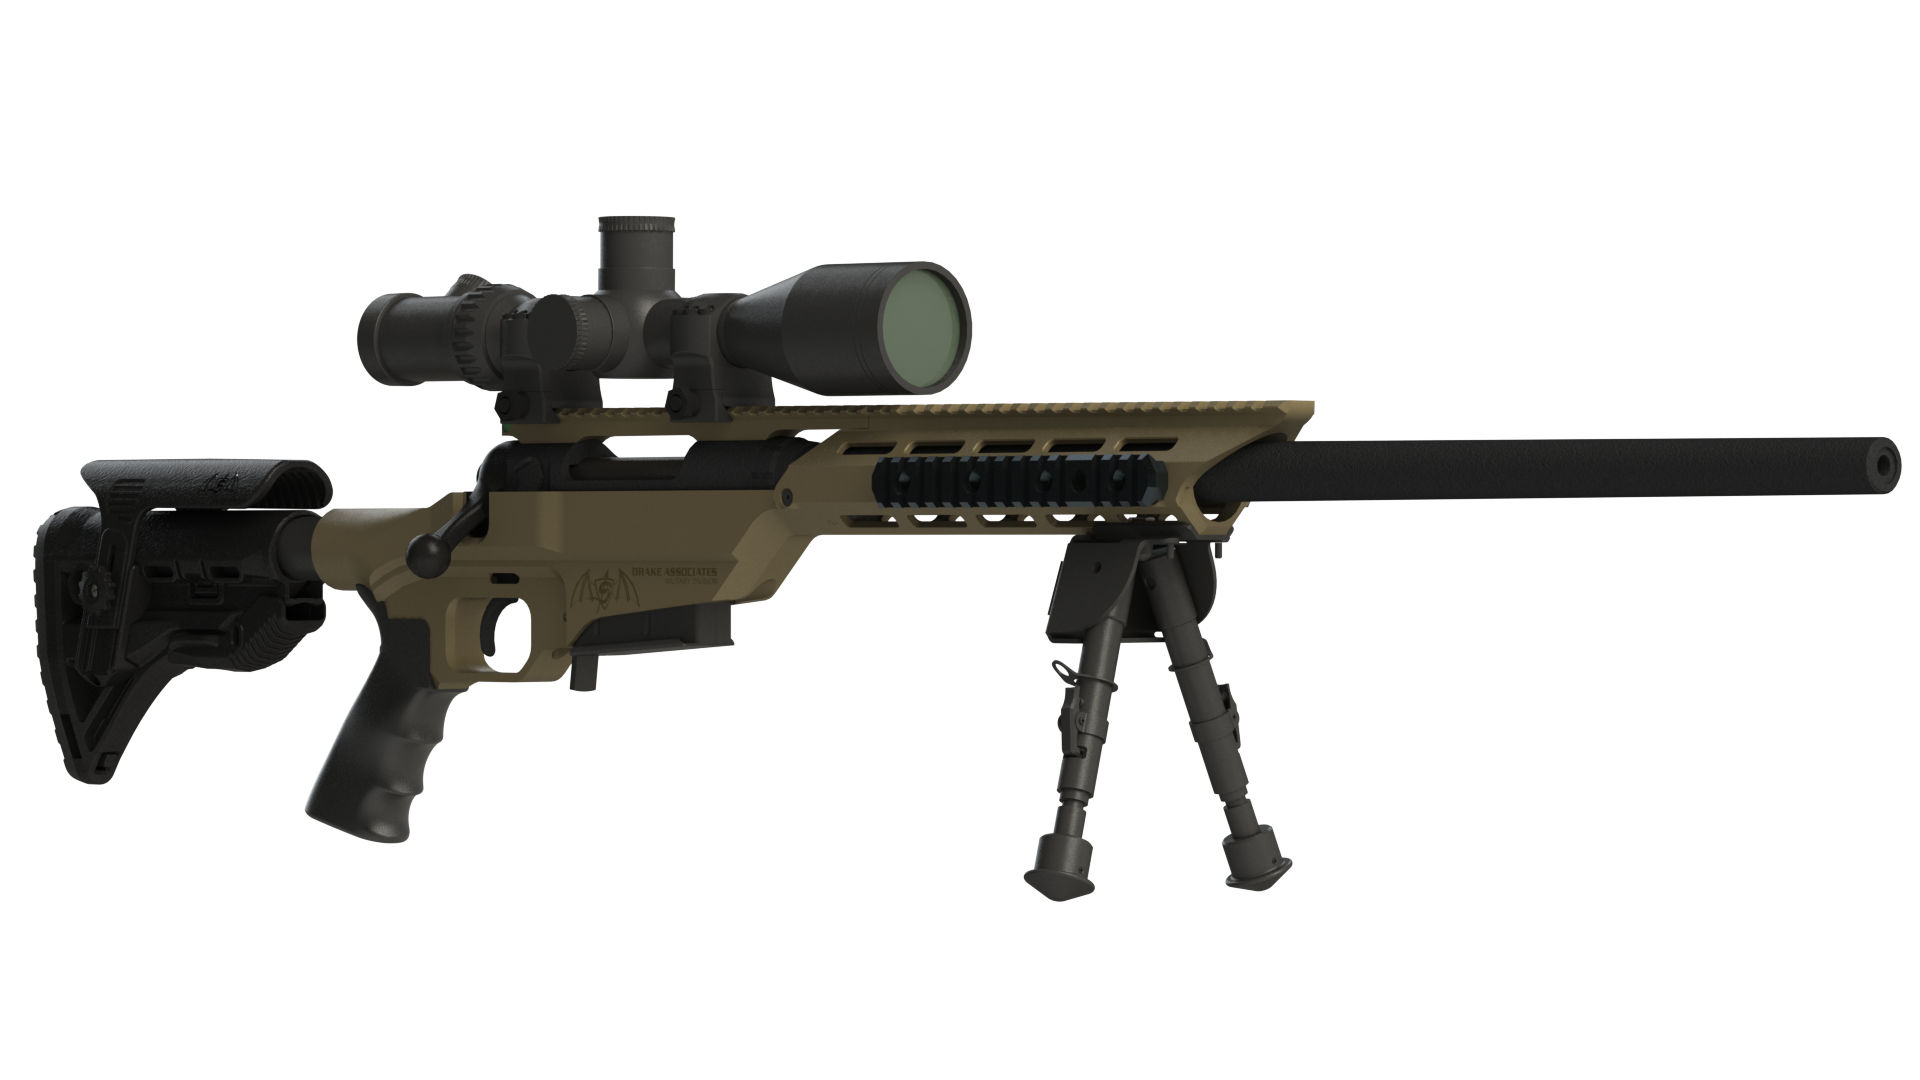 sniper rifle png images are download crazypngm crazy png images download #30178